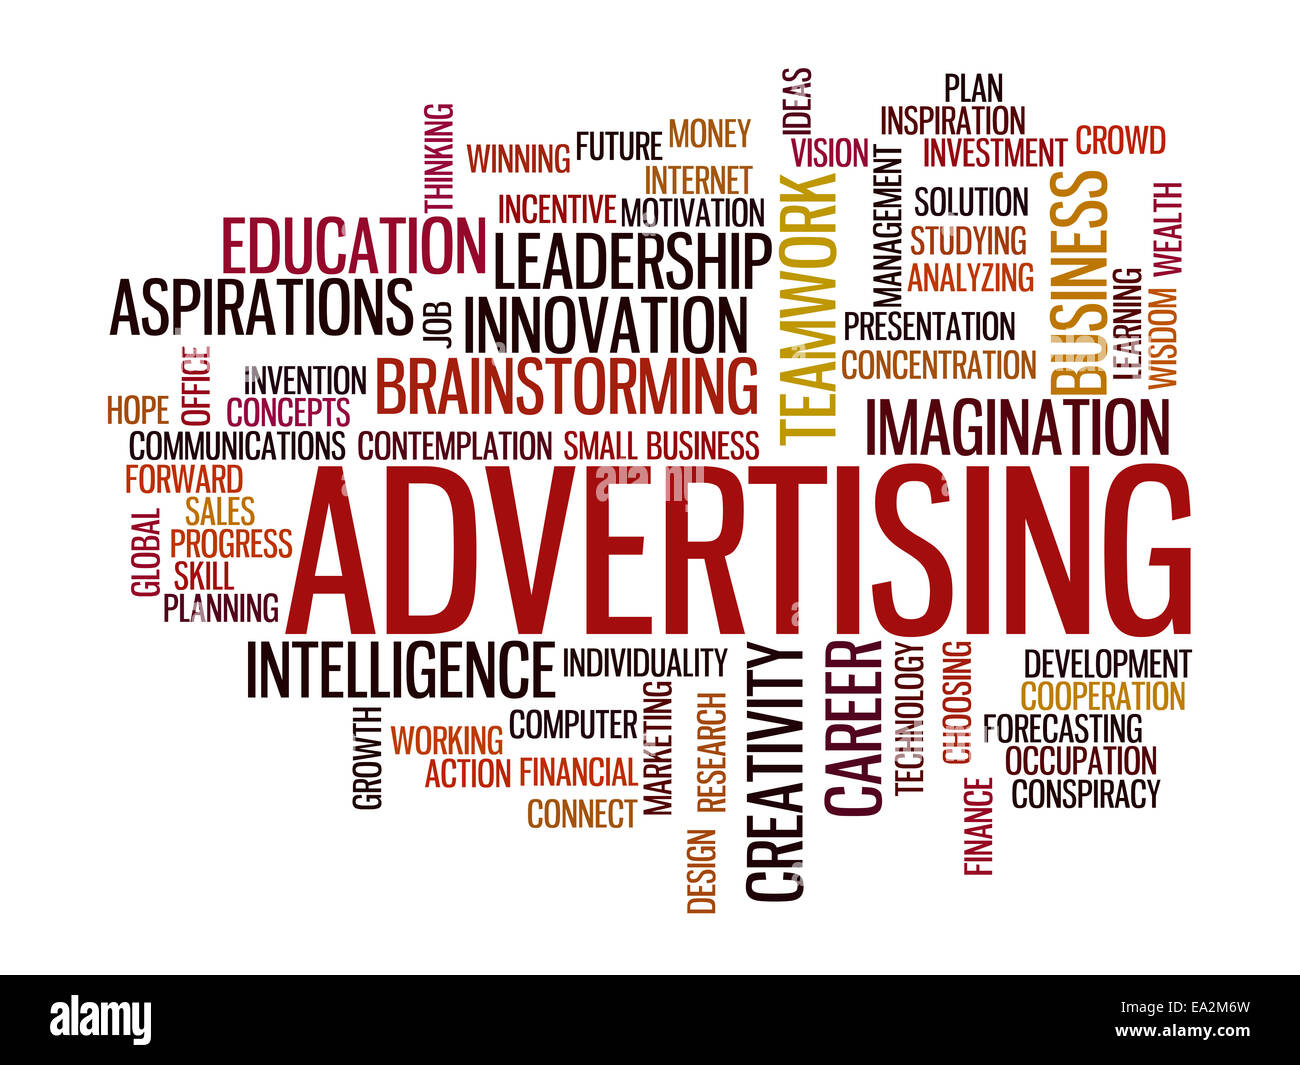 advertising vision concept word cloud - Stock Image